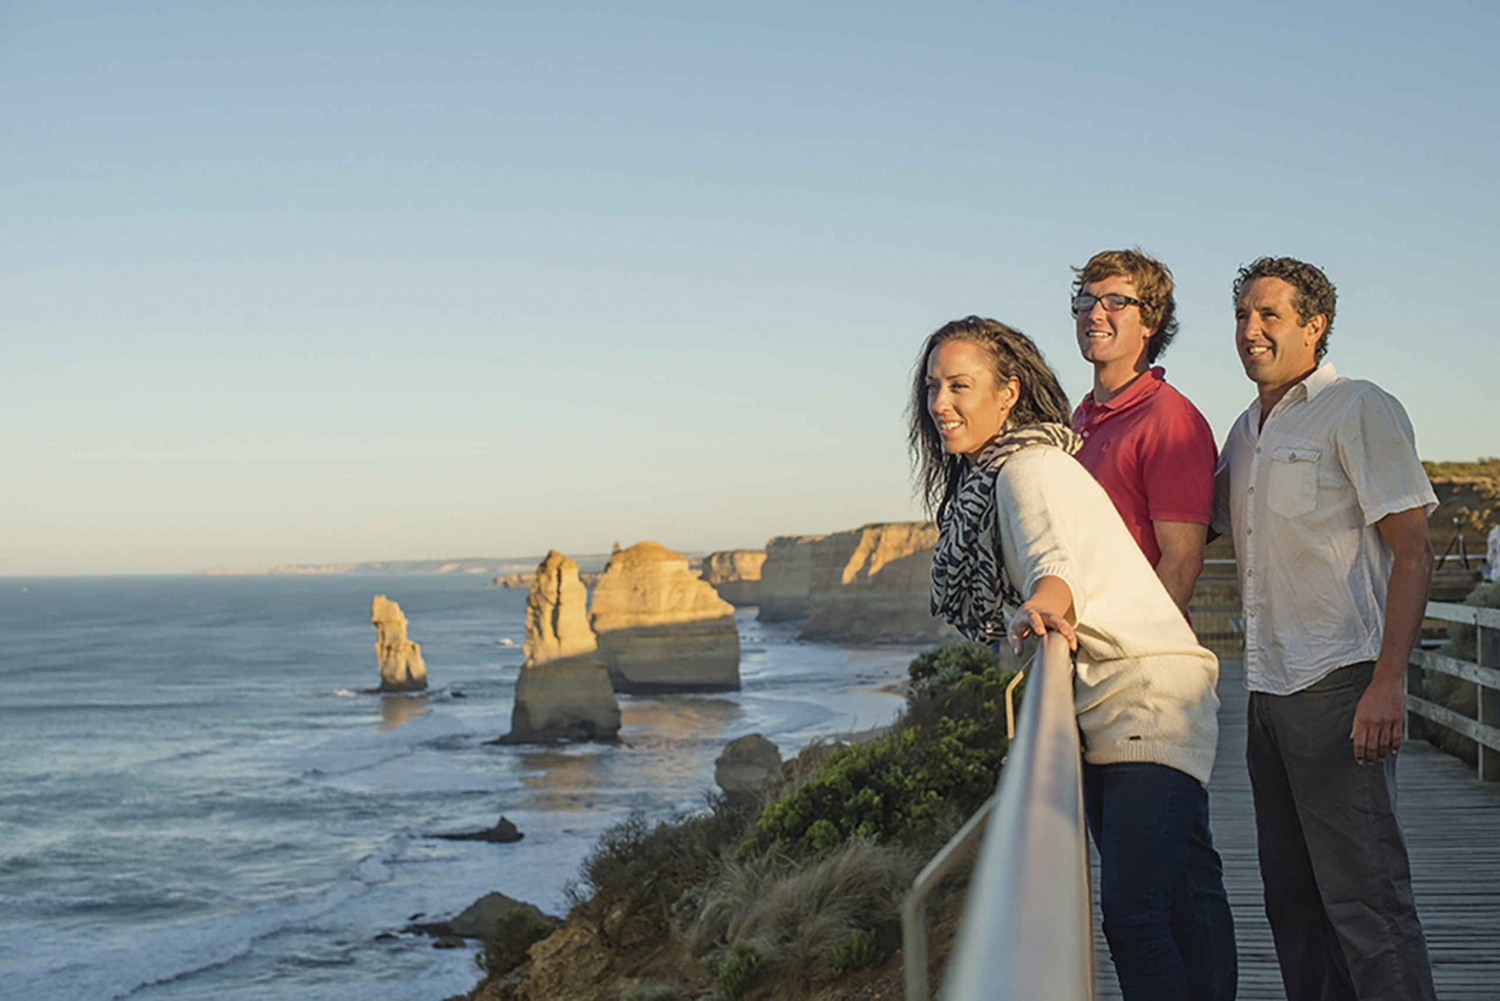 Great Ocean Road & 12 Apostles Classic Tour from Melbourne